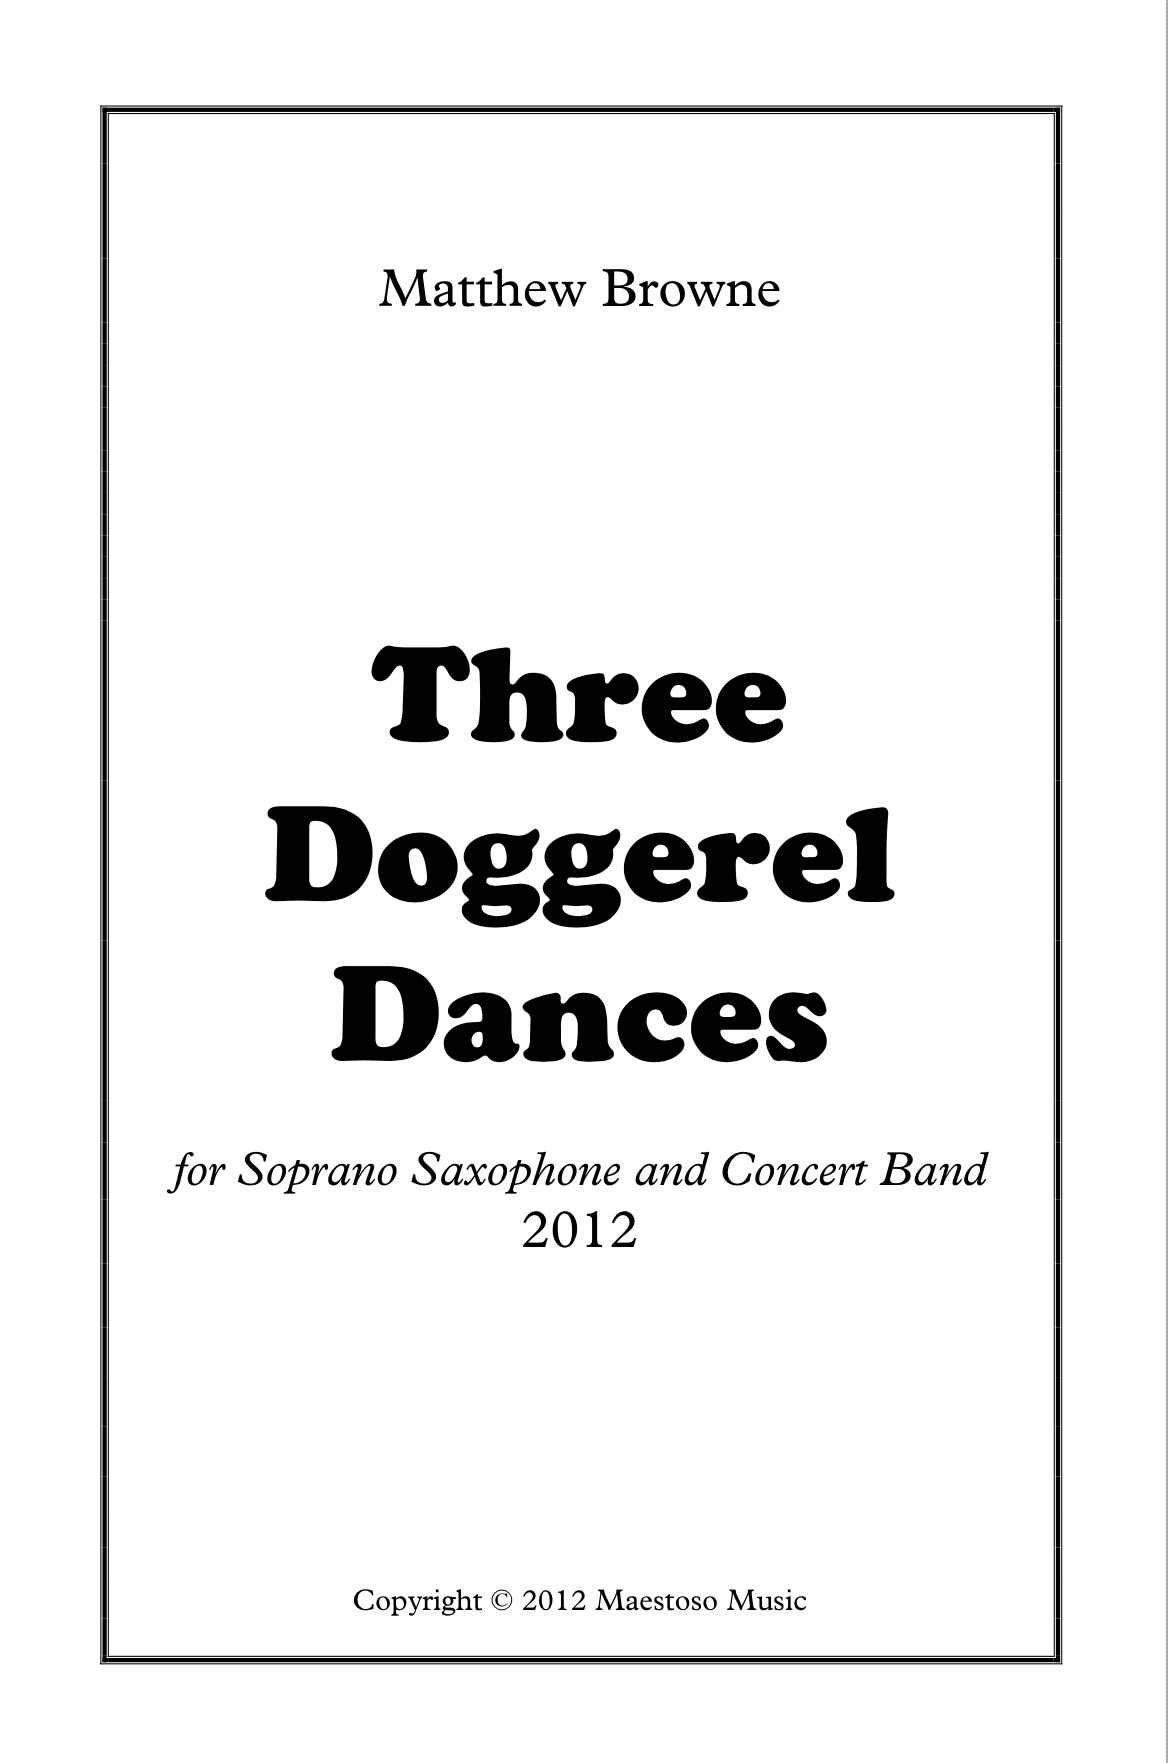 Three Doggerel Dances -Concerto For Sop Sax by Matt Browne